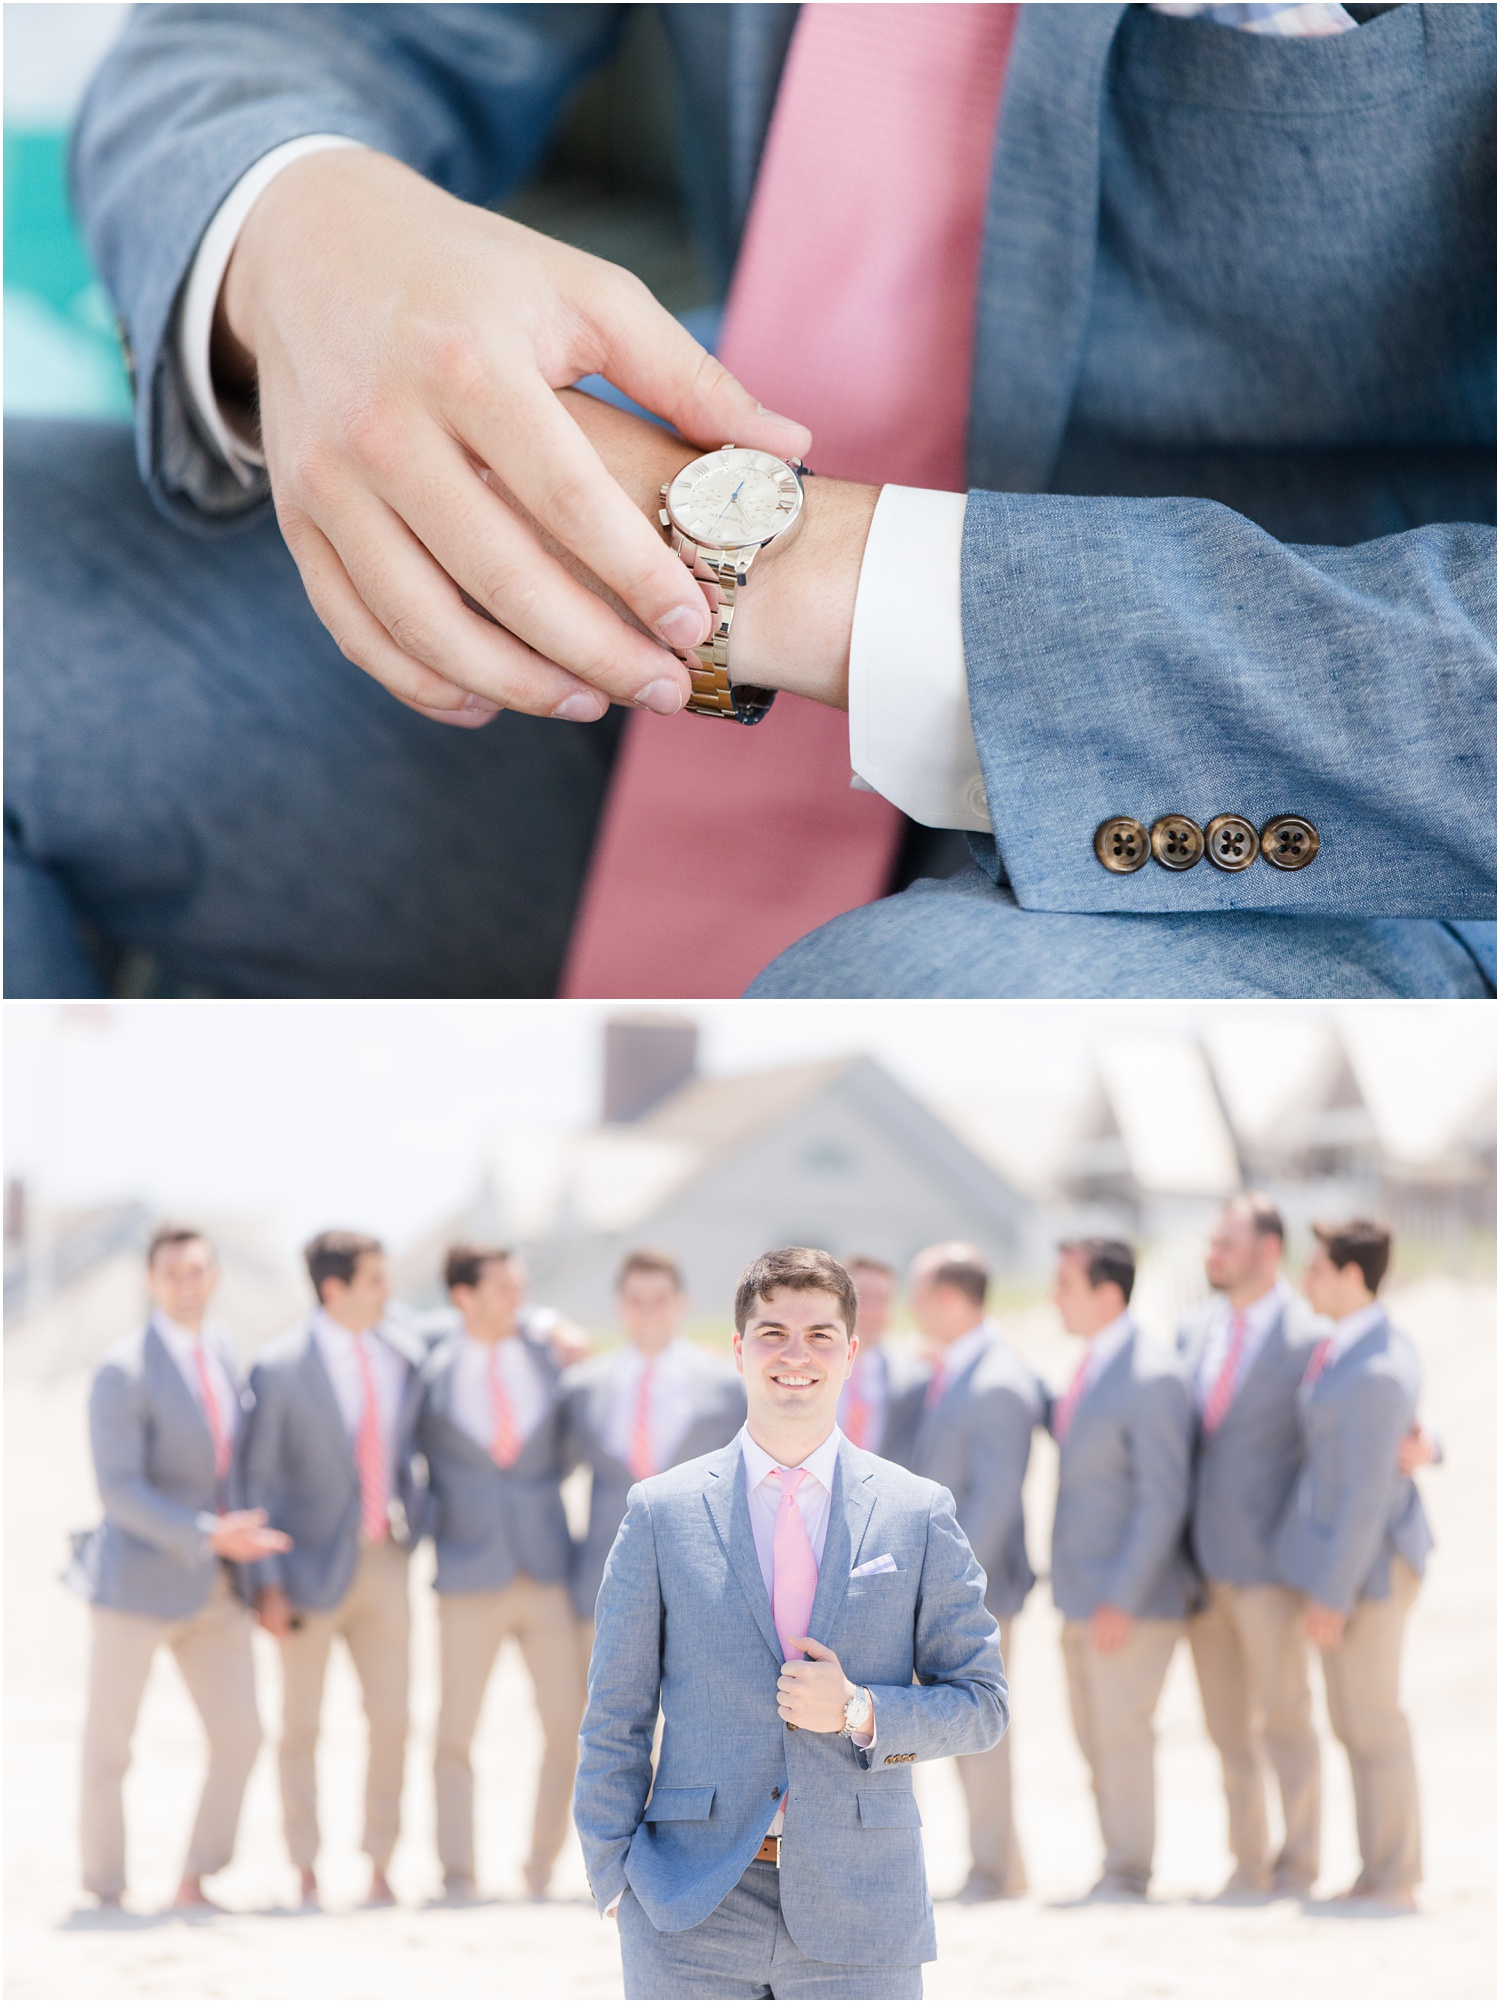 Groom's Tiffany watch with chambray suit and pink accents for Nautical wedding in Mantoloking, NJ.